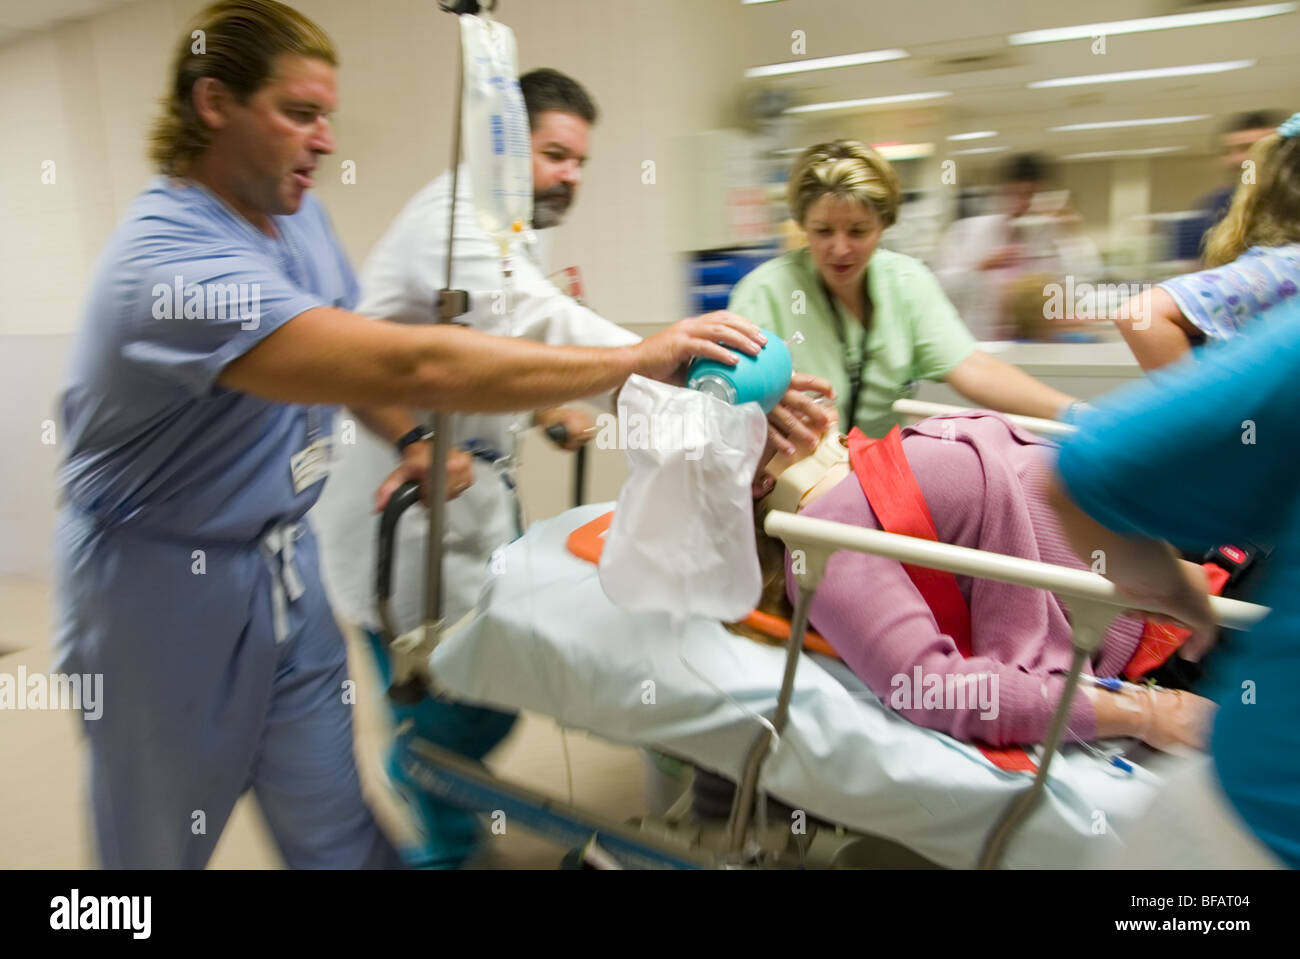 Emergency room, EMTs rush patient to operating room. - Stock Image